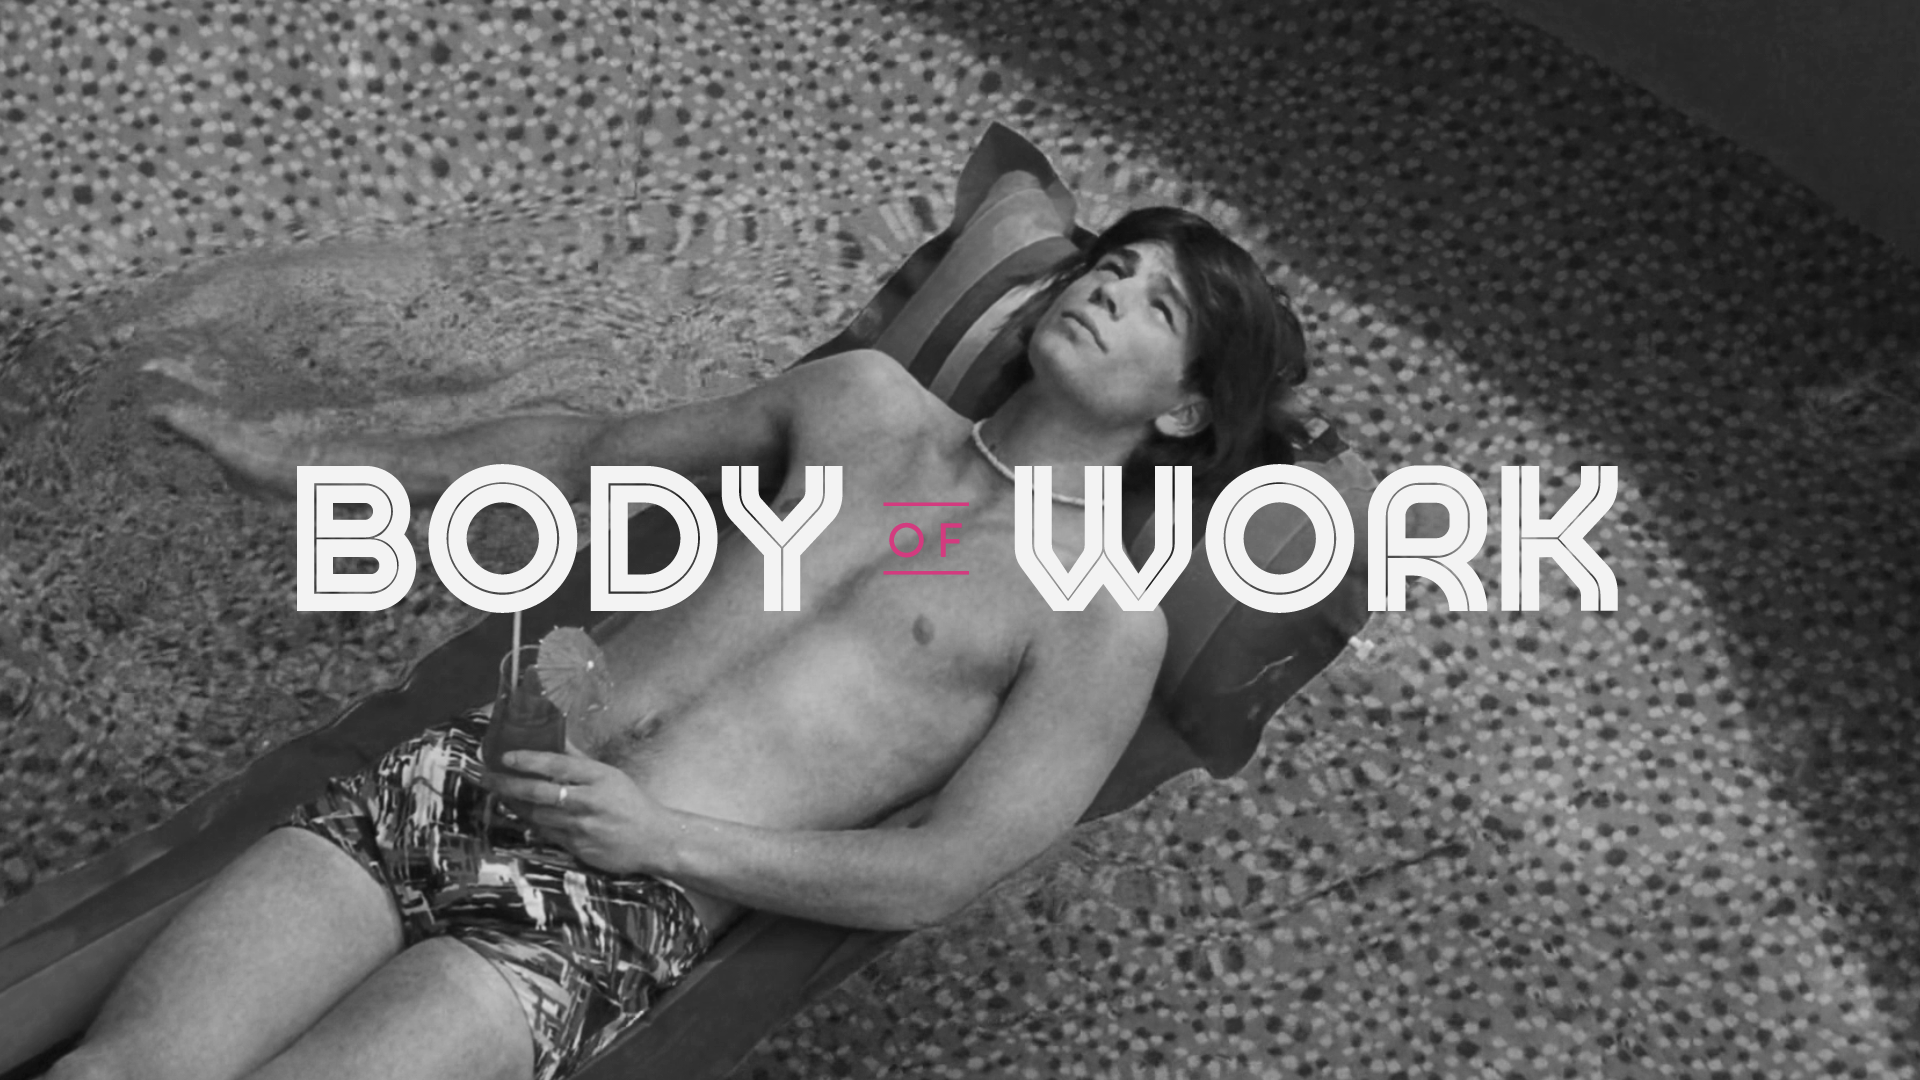 Bodyofwork josh hartnett final large thumbnail 3 override